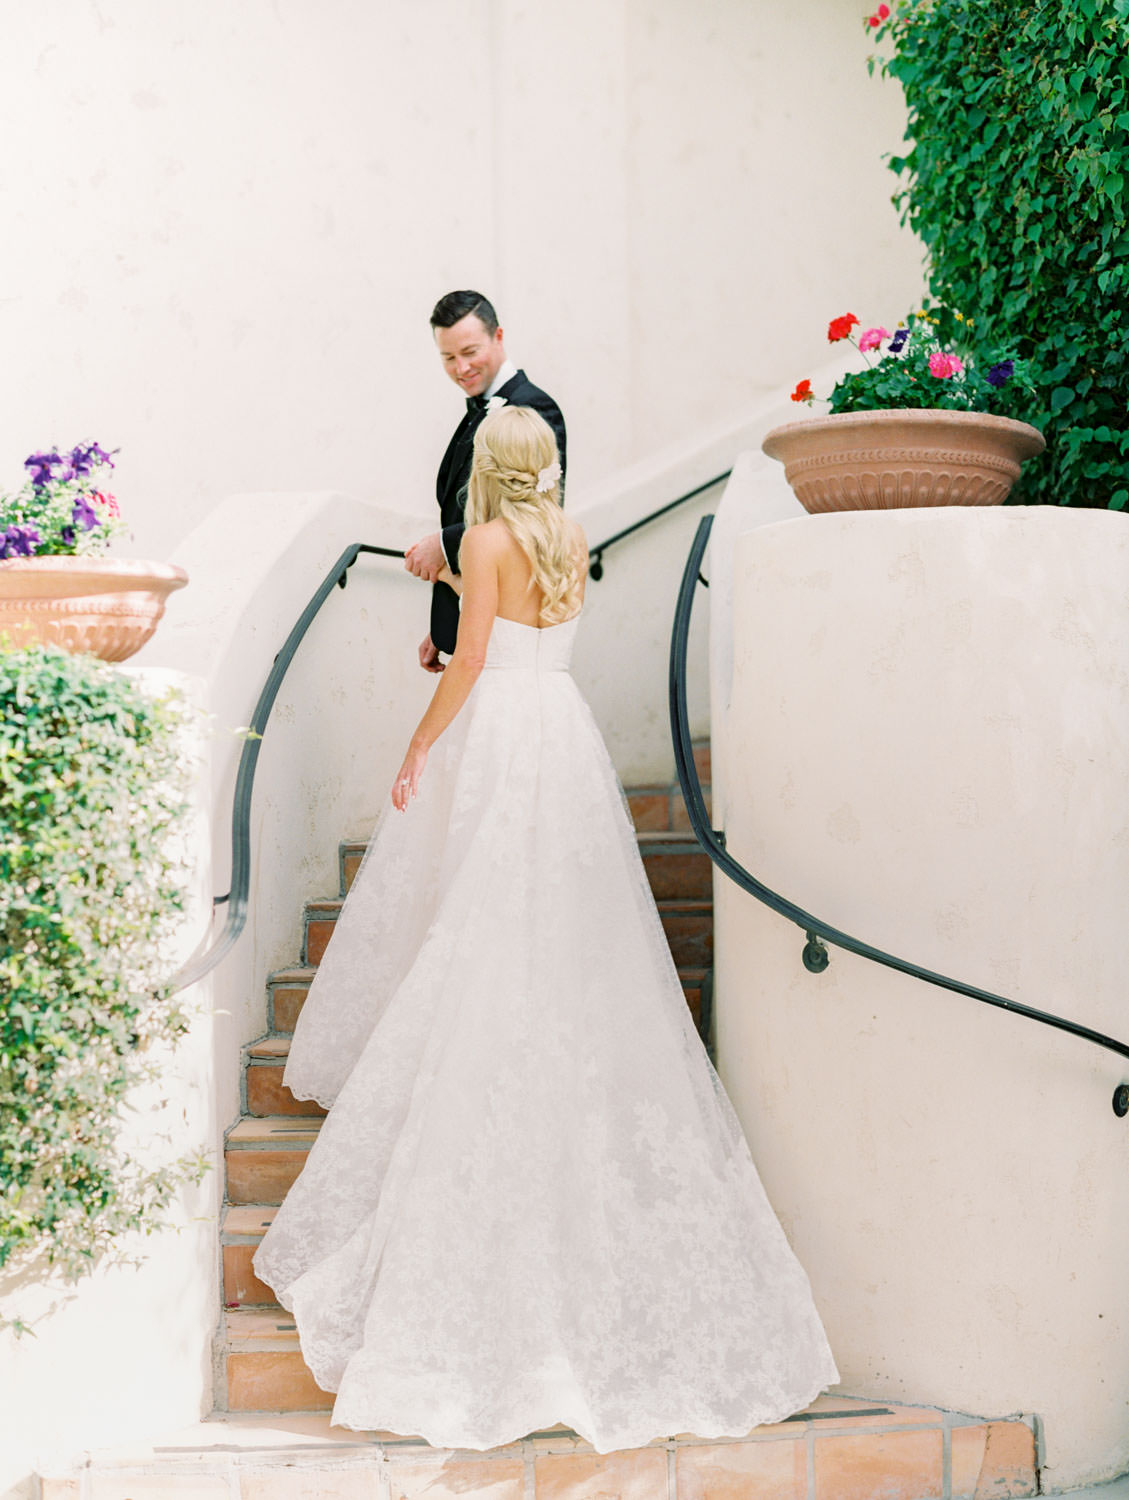 Bride and groom walking up a spiral staircase. Bride in lace Watters sweetheart gown with her hair half up and curled. Groom in classic black tuxedo with single white rose for boutonniere. Miramonte Resort wedding. Film photography by Cavin Elizabeth.